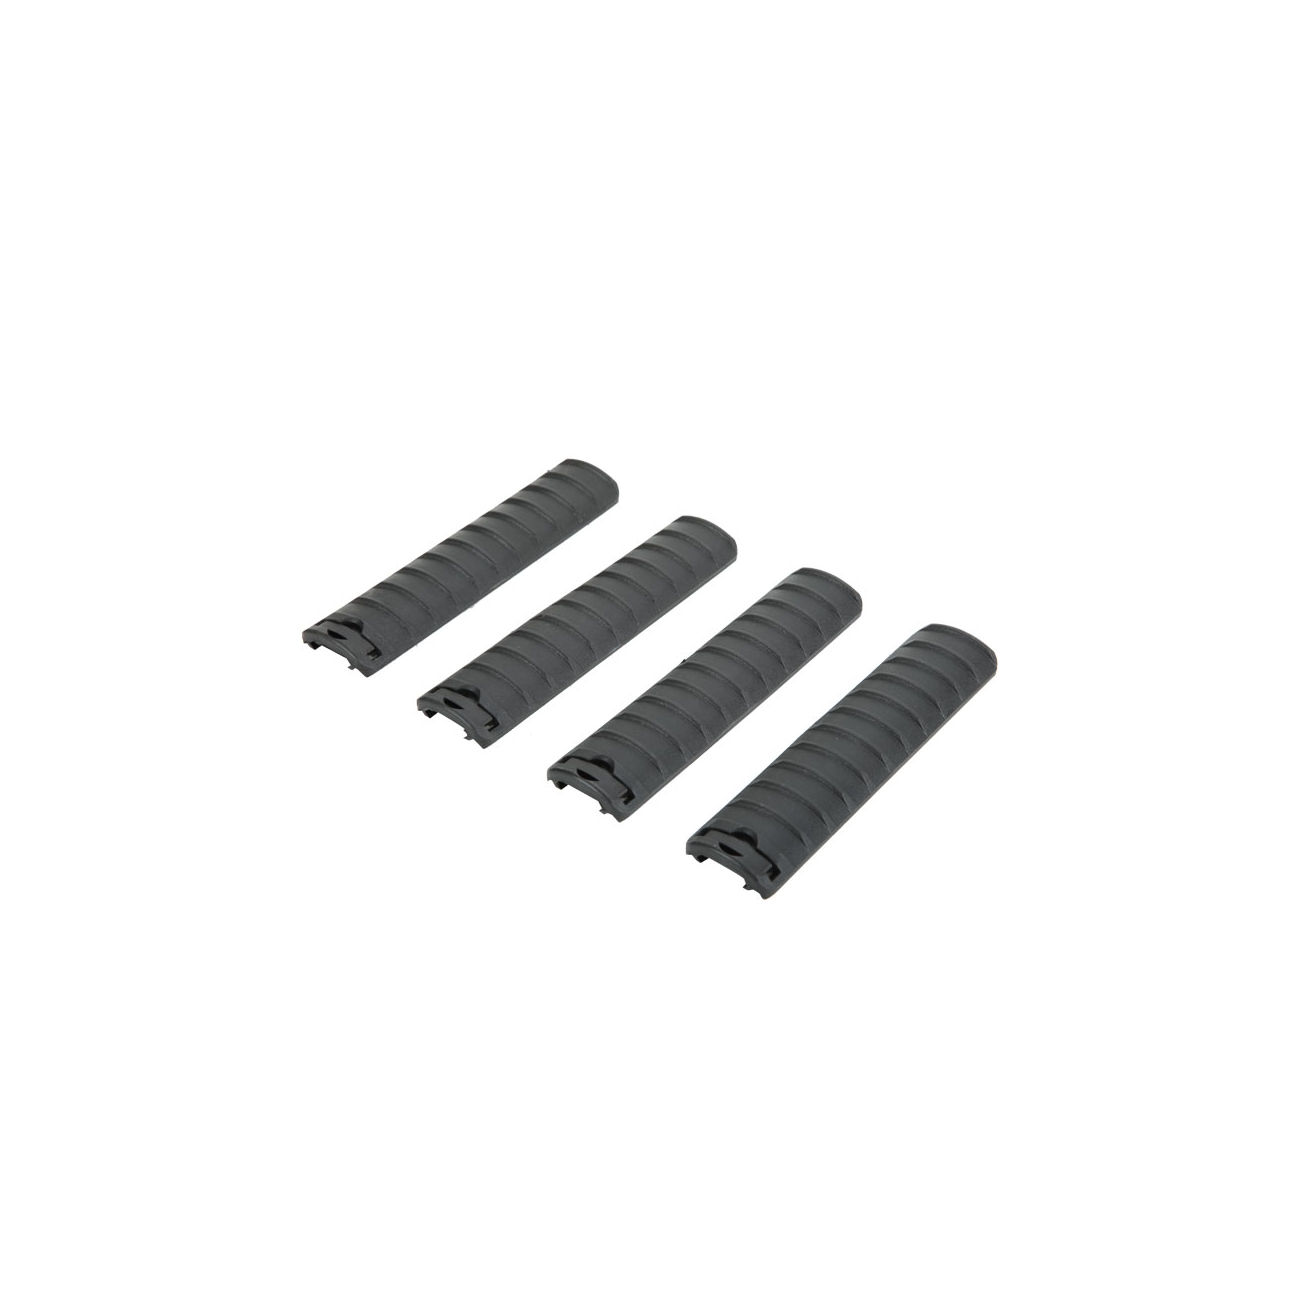 DBoys Rail Covers 158mm 4er Set - schwarz